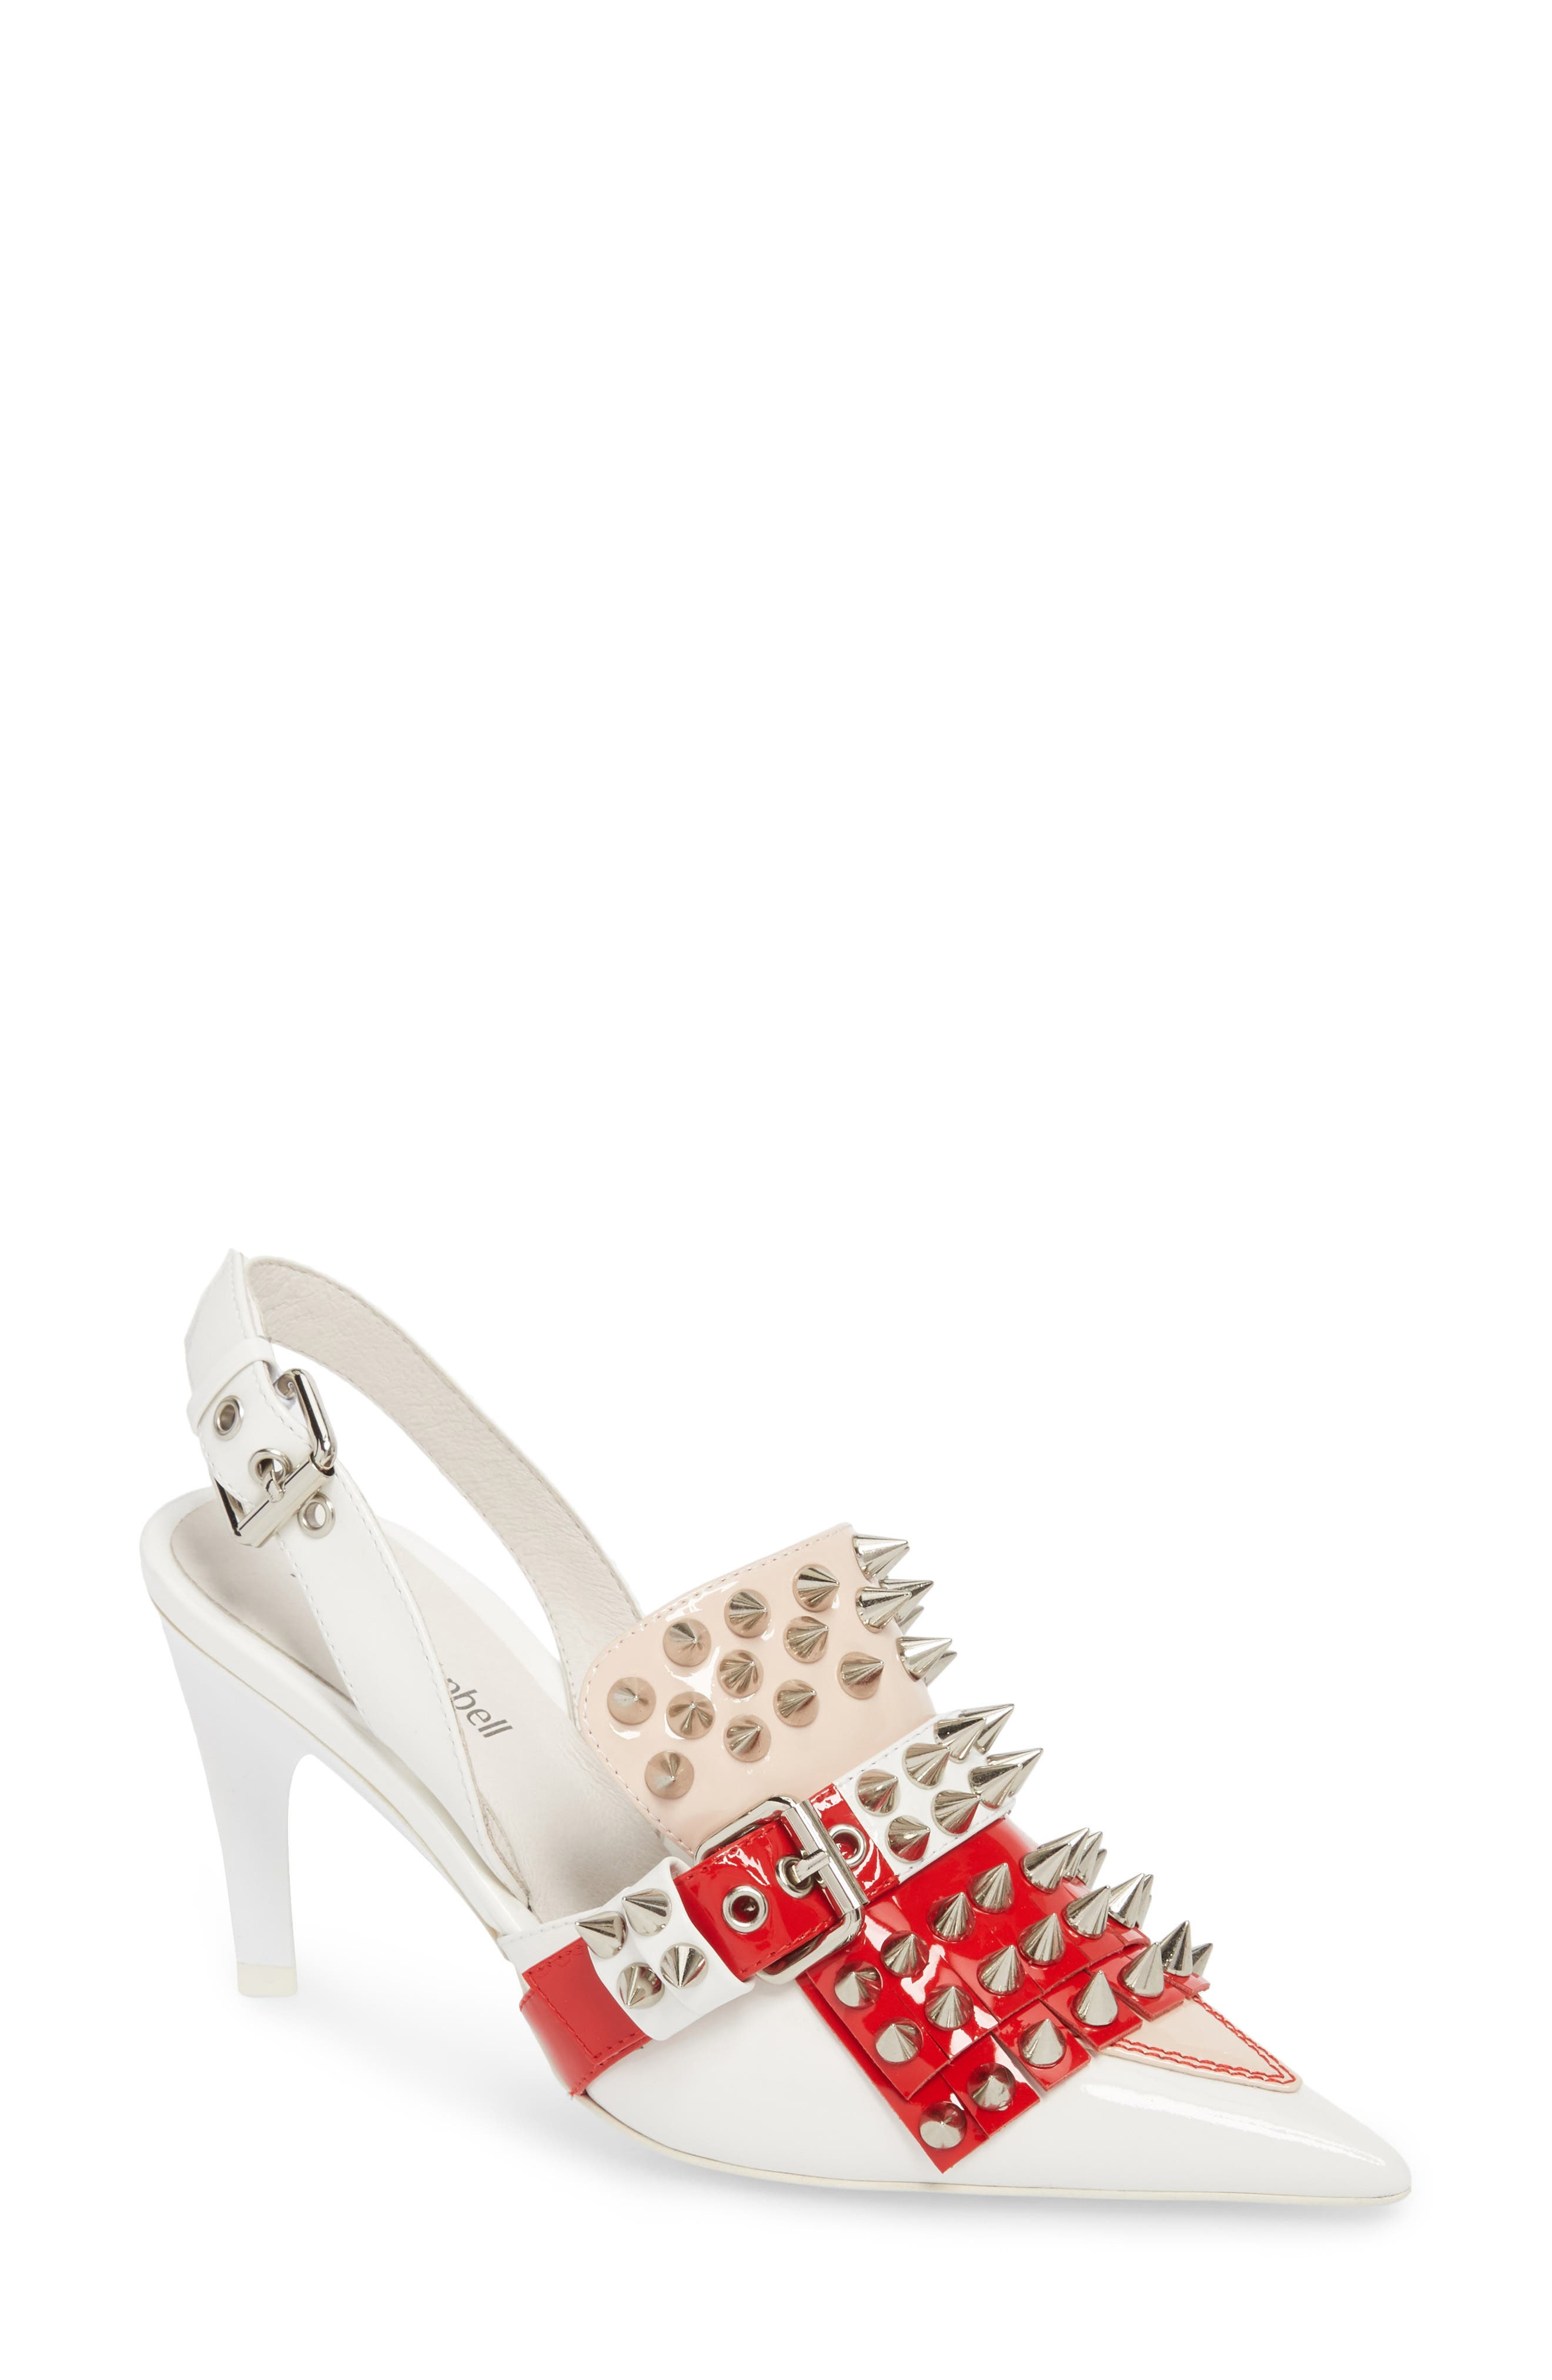 Vicious-2 Studded Loafer Pump,                             Main thumbnail 1, color,                             White/ Red/ Pink Patent/ White